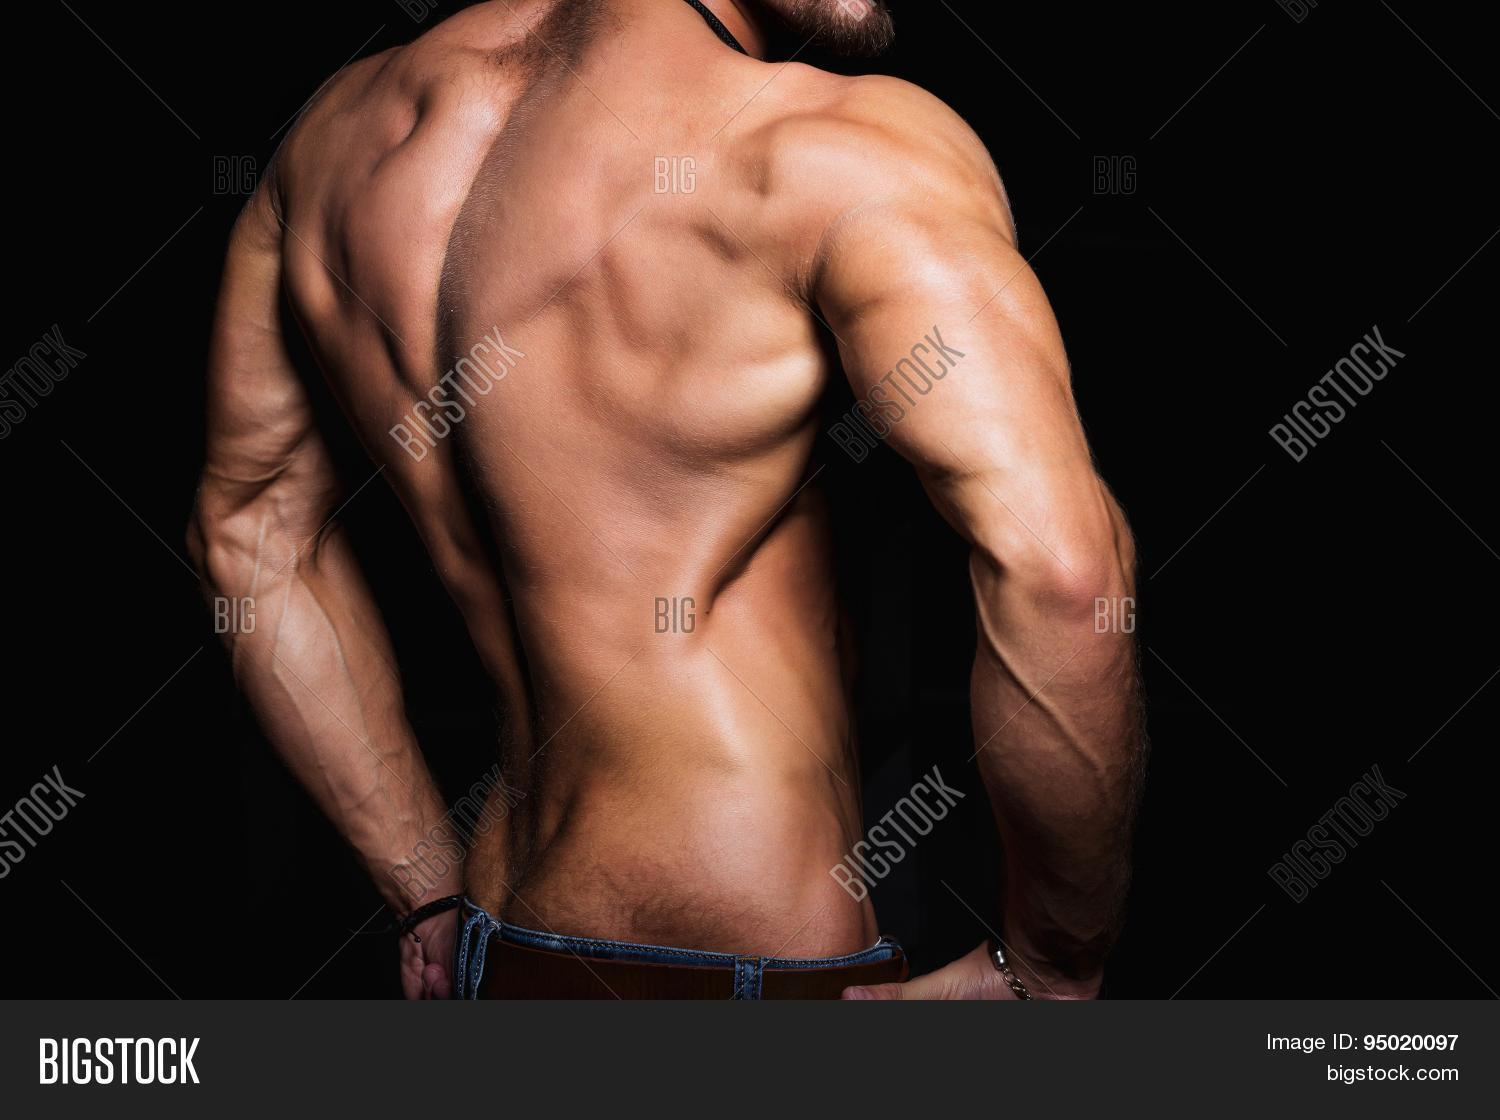 Muscular Back Sexy Image Photo Free Trial Bigstock